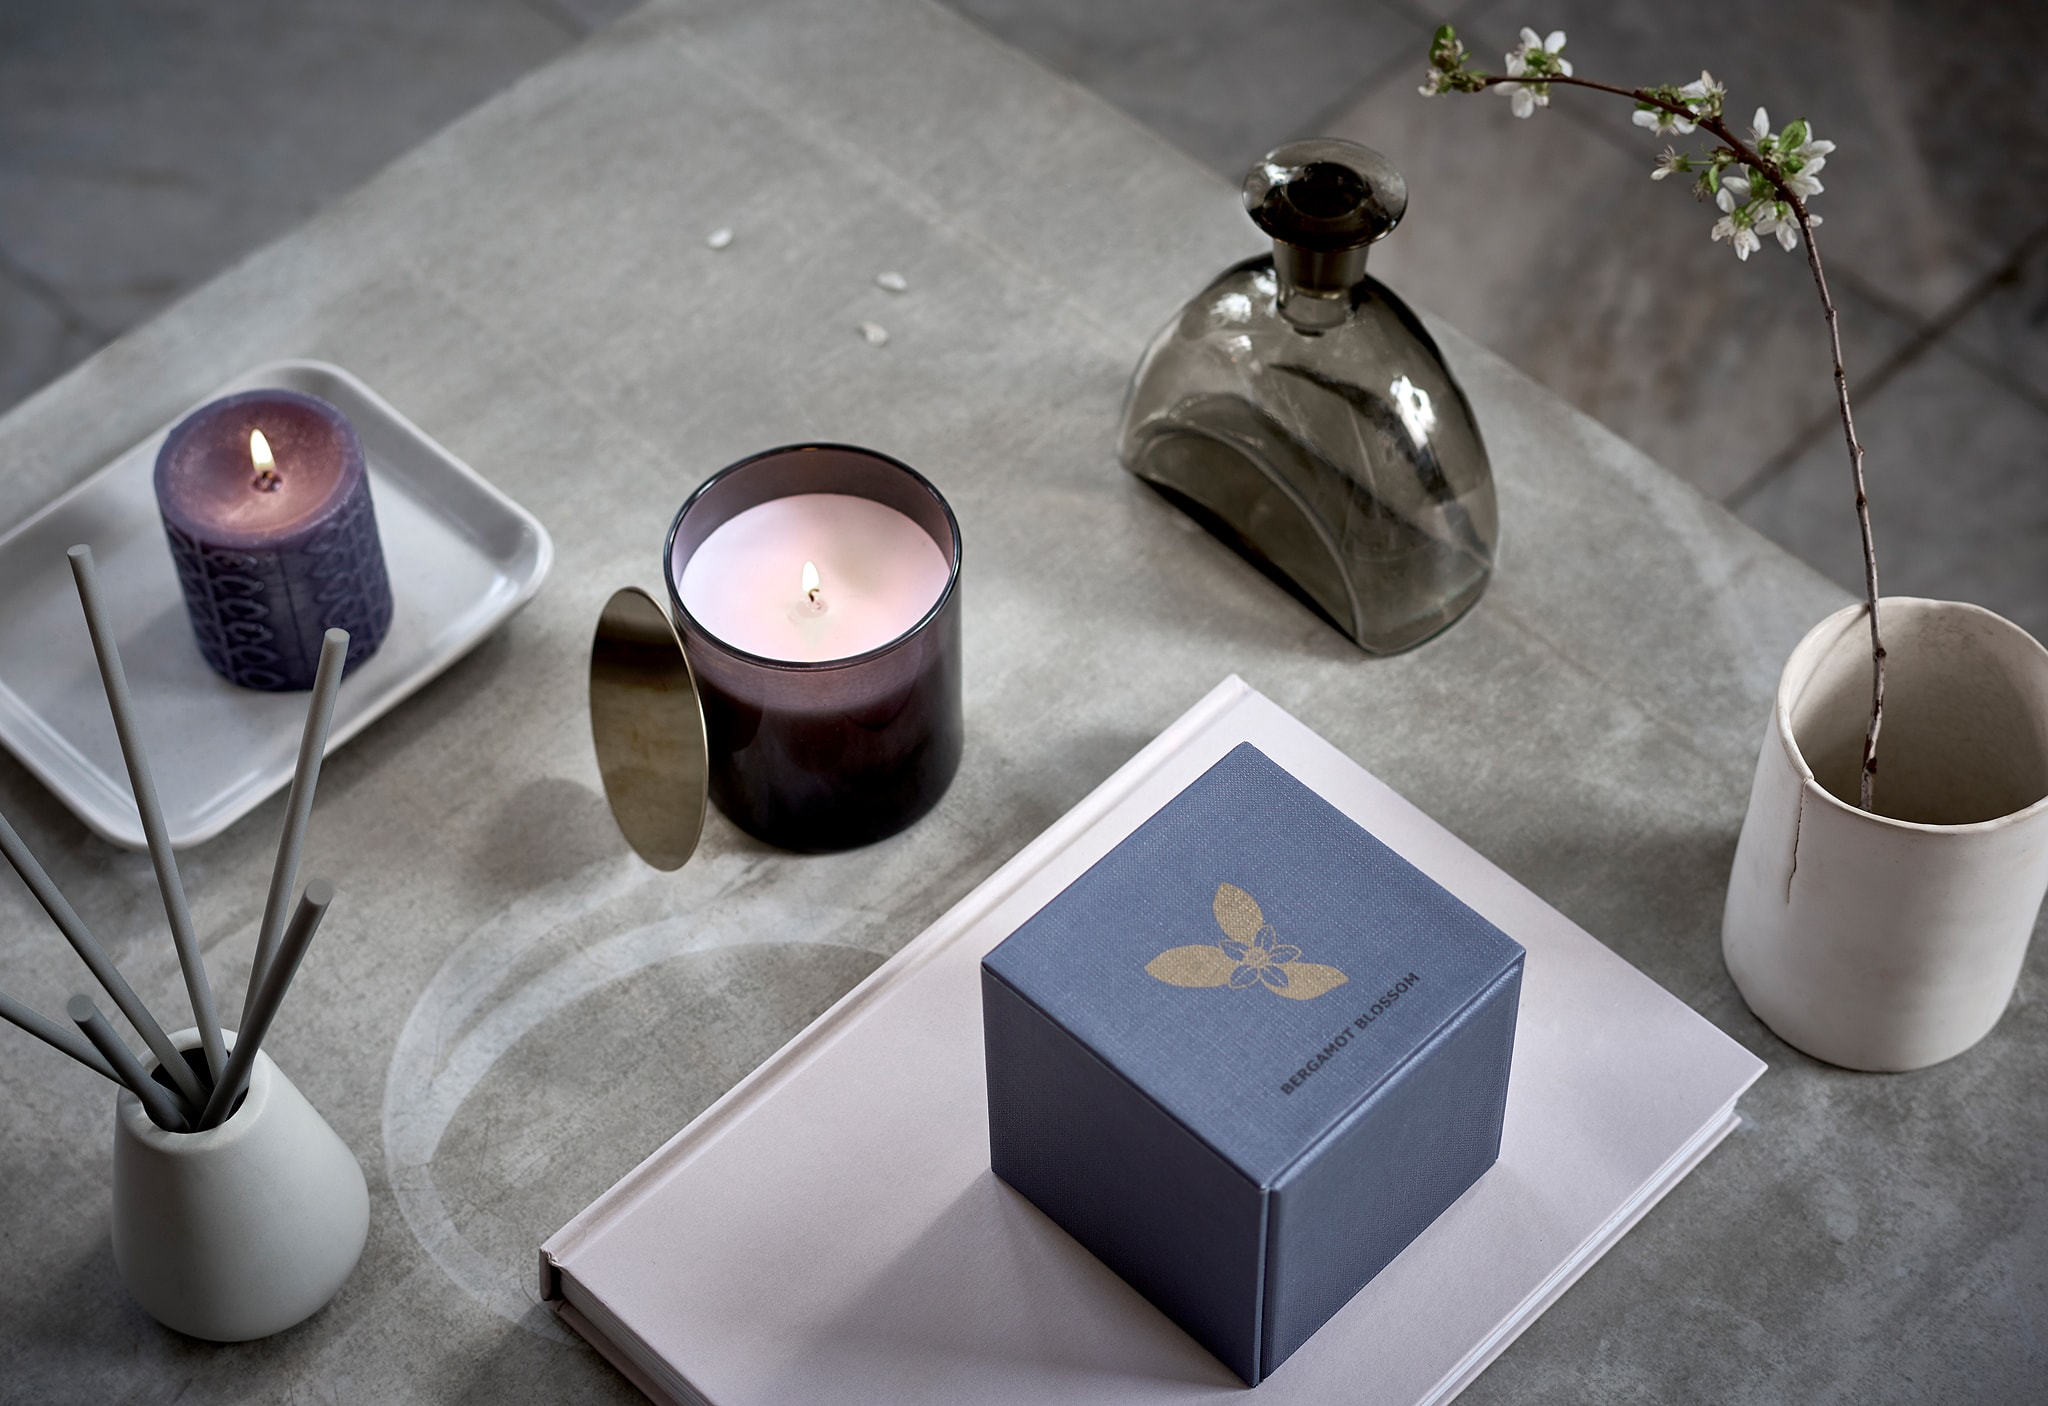 Surface with symmetric arrangement of scented candles, a cup with a twig in bloom and similar spa-style decorations.